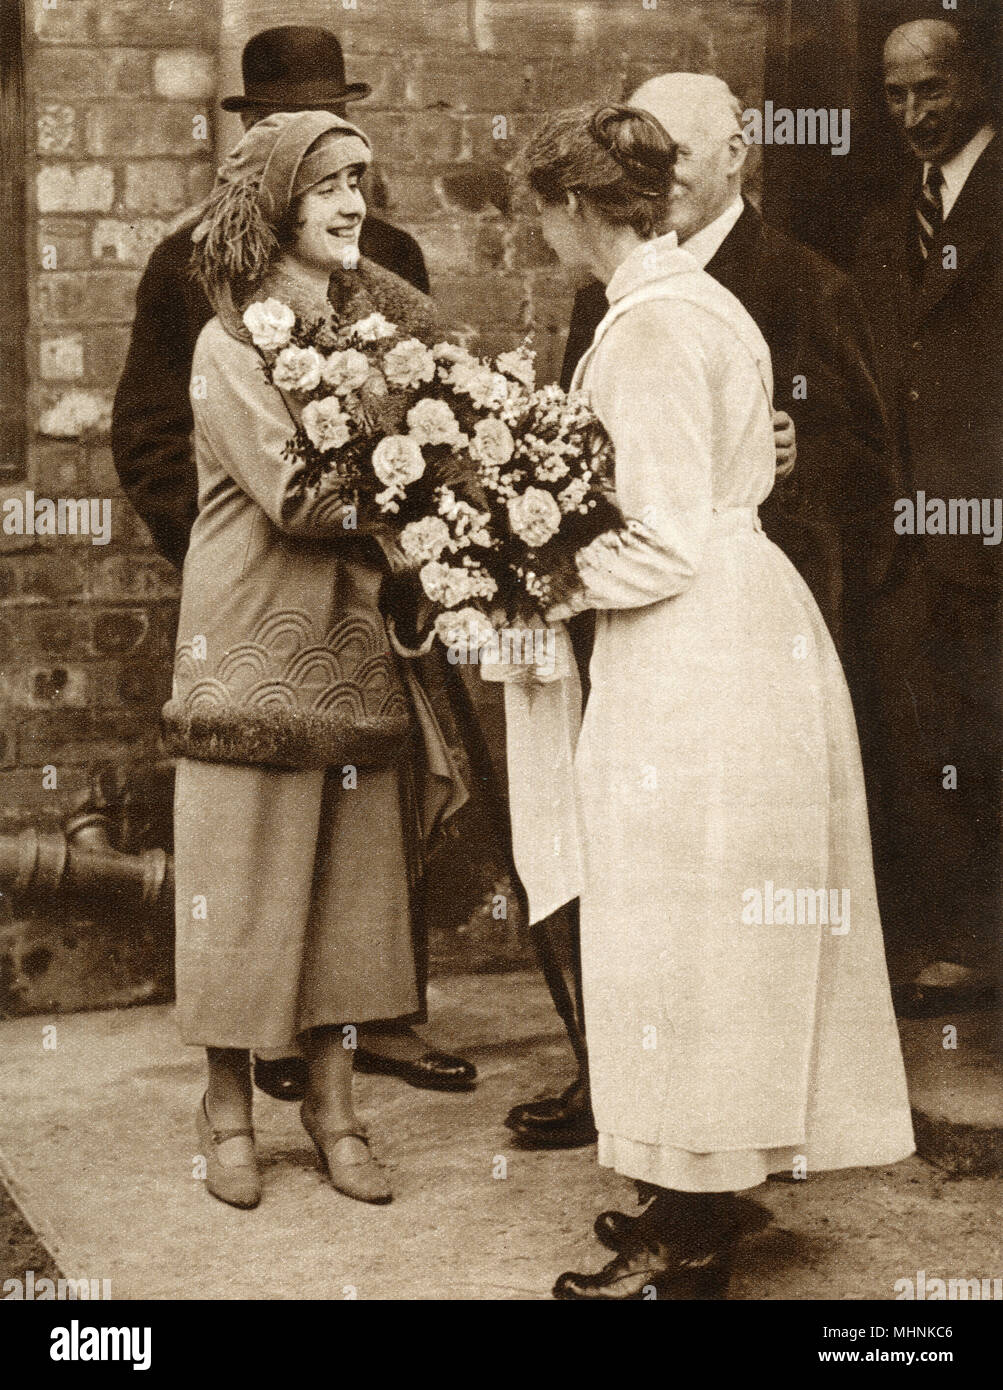 Elizabeth Bowes-Lyon (1900-2002) (later Elizabeth, The Queen Mother) visiting the McVitie & Price factory in Edinburgh, Scotland, the company tasked with making the wedding cake for her forthcoming marriage to Albert, Duke of York (1895-1952) (later King George VI). After seeing all the processes of biscuit and cake making, Lady Elizabeth was presented with a fine bouquet of flowers by the workers.     Date: 1923 Stock Photo